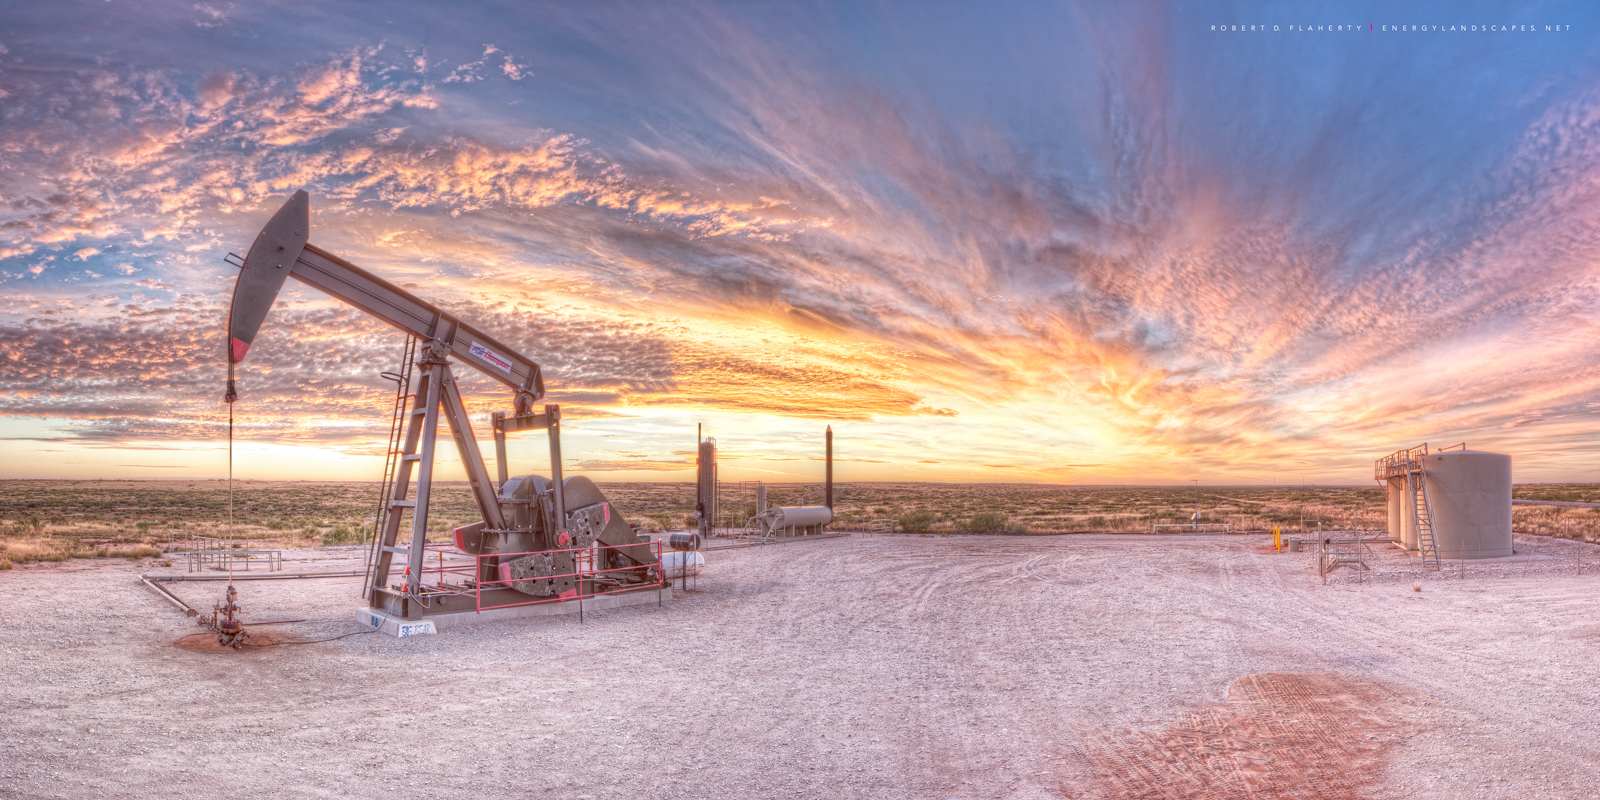 New Mexico, pumping unit, pump jack, pumpjack, sunset, Champion, PUR, Champion pumping unit, Champion pump jack, Taste@508, Devon, Lea County New Mexico, Midland, Texas, Zeiss 55mm f/1.4 Otus Distagon, photo